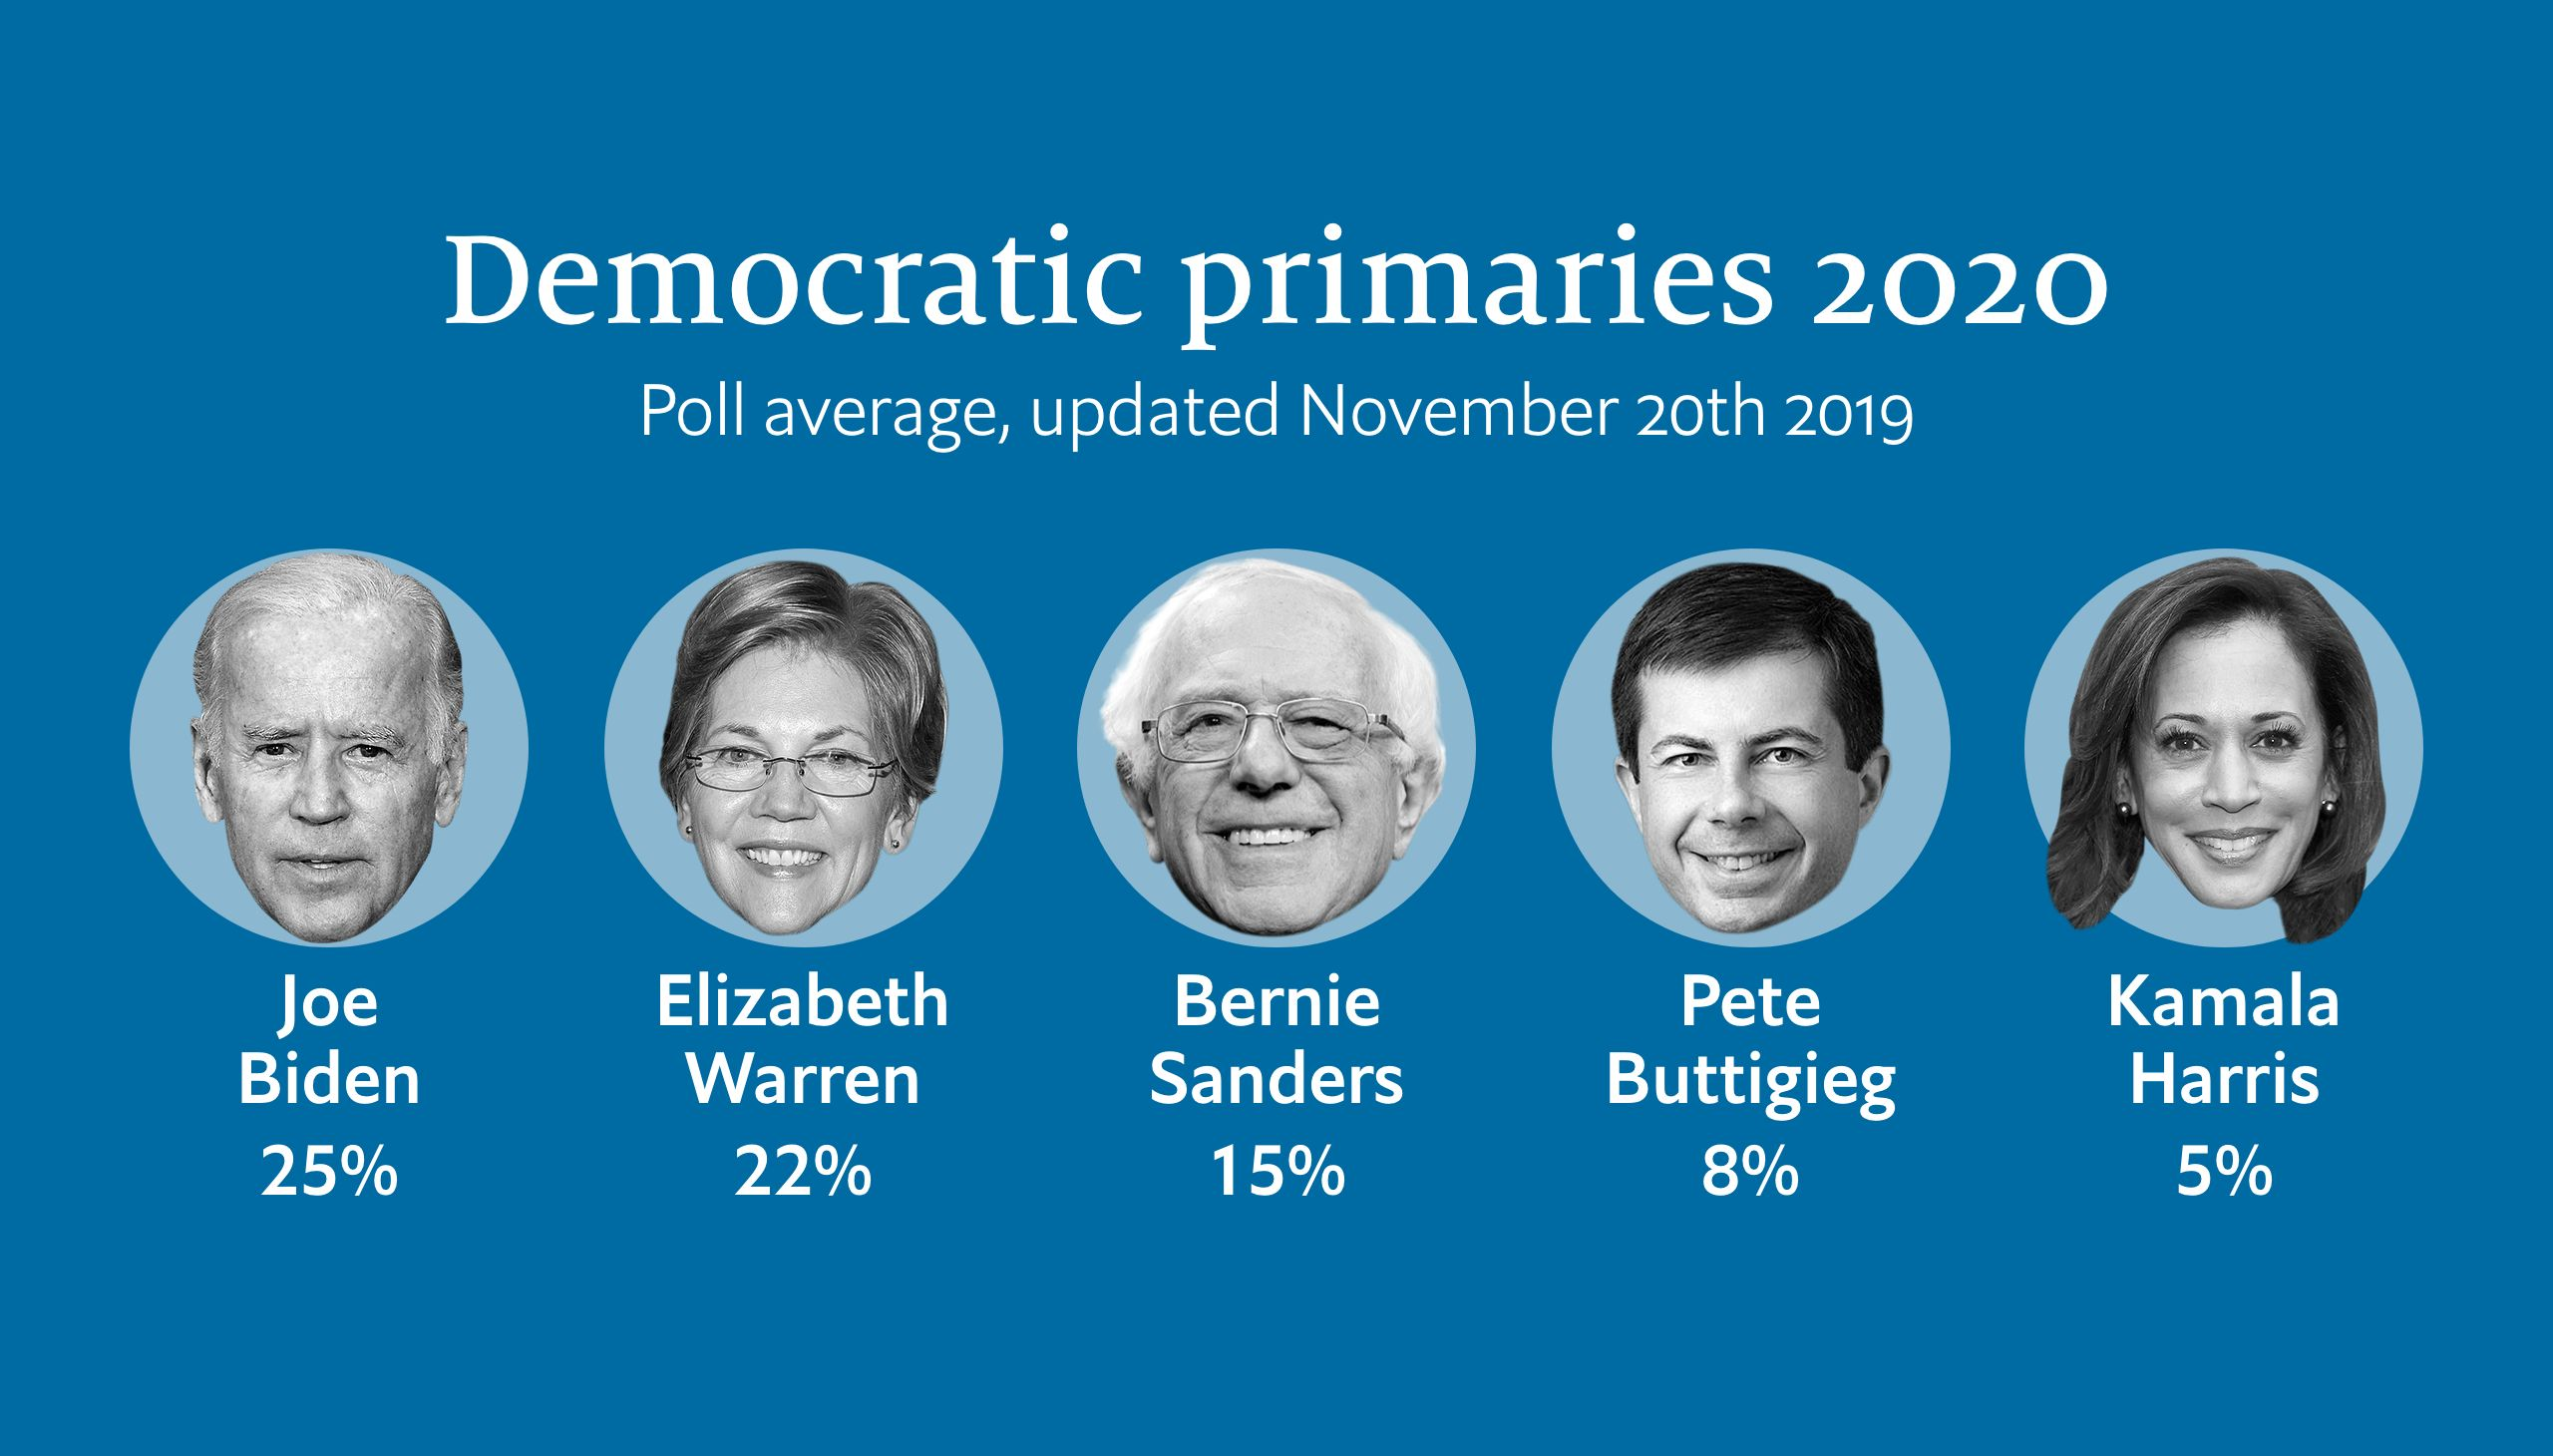 Who is ahead in the Democratic primary race?